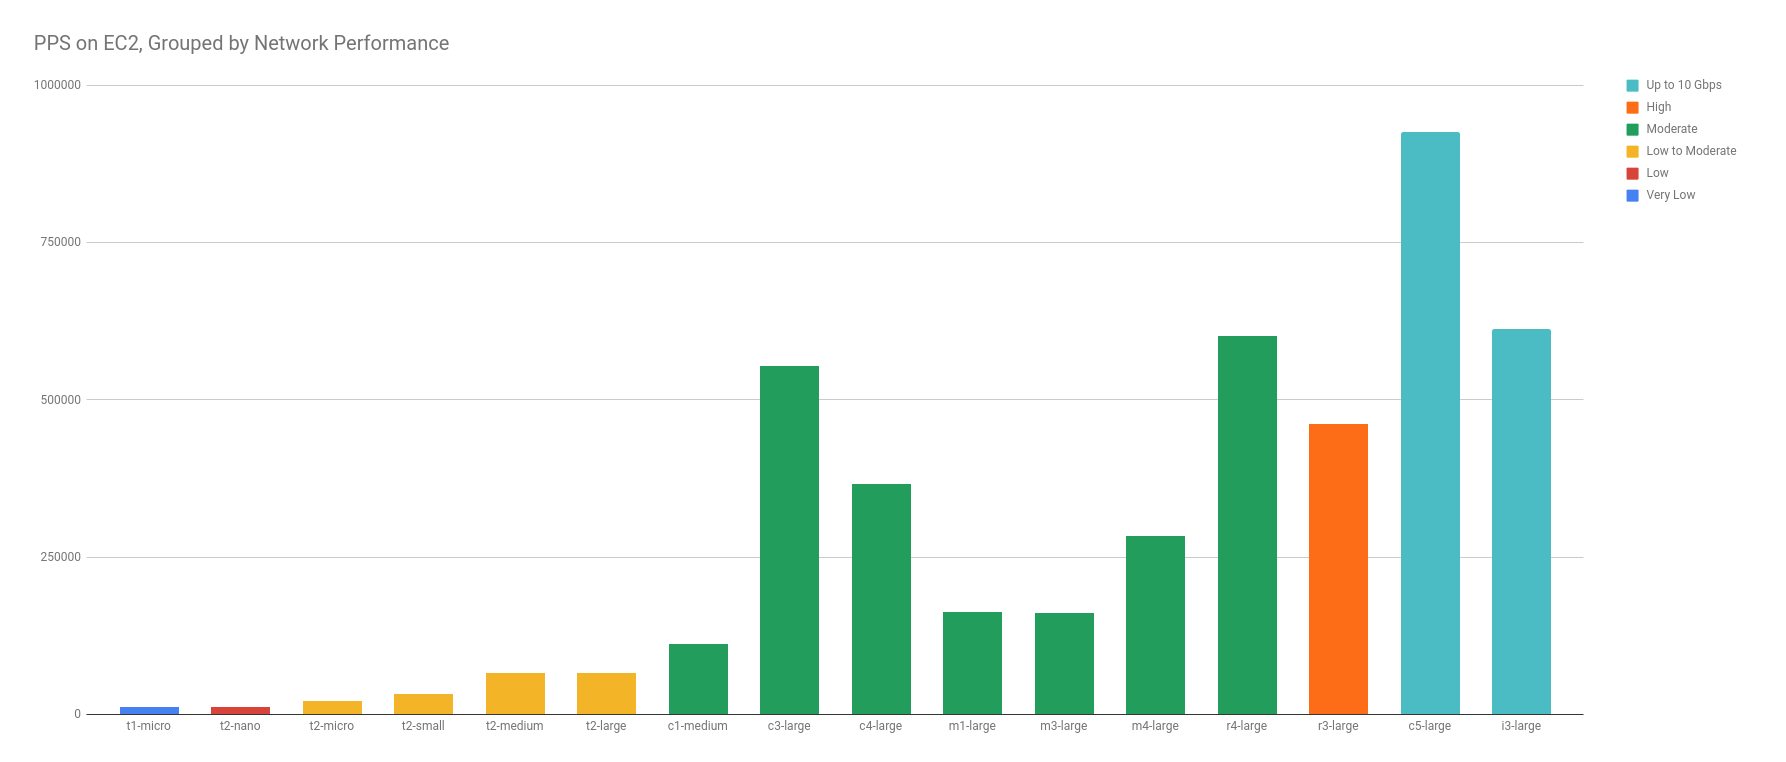 PPS on EC2 Grouped by Network Performance